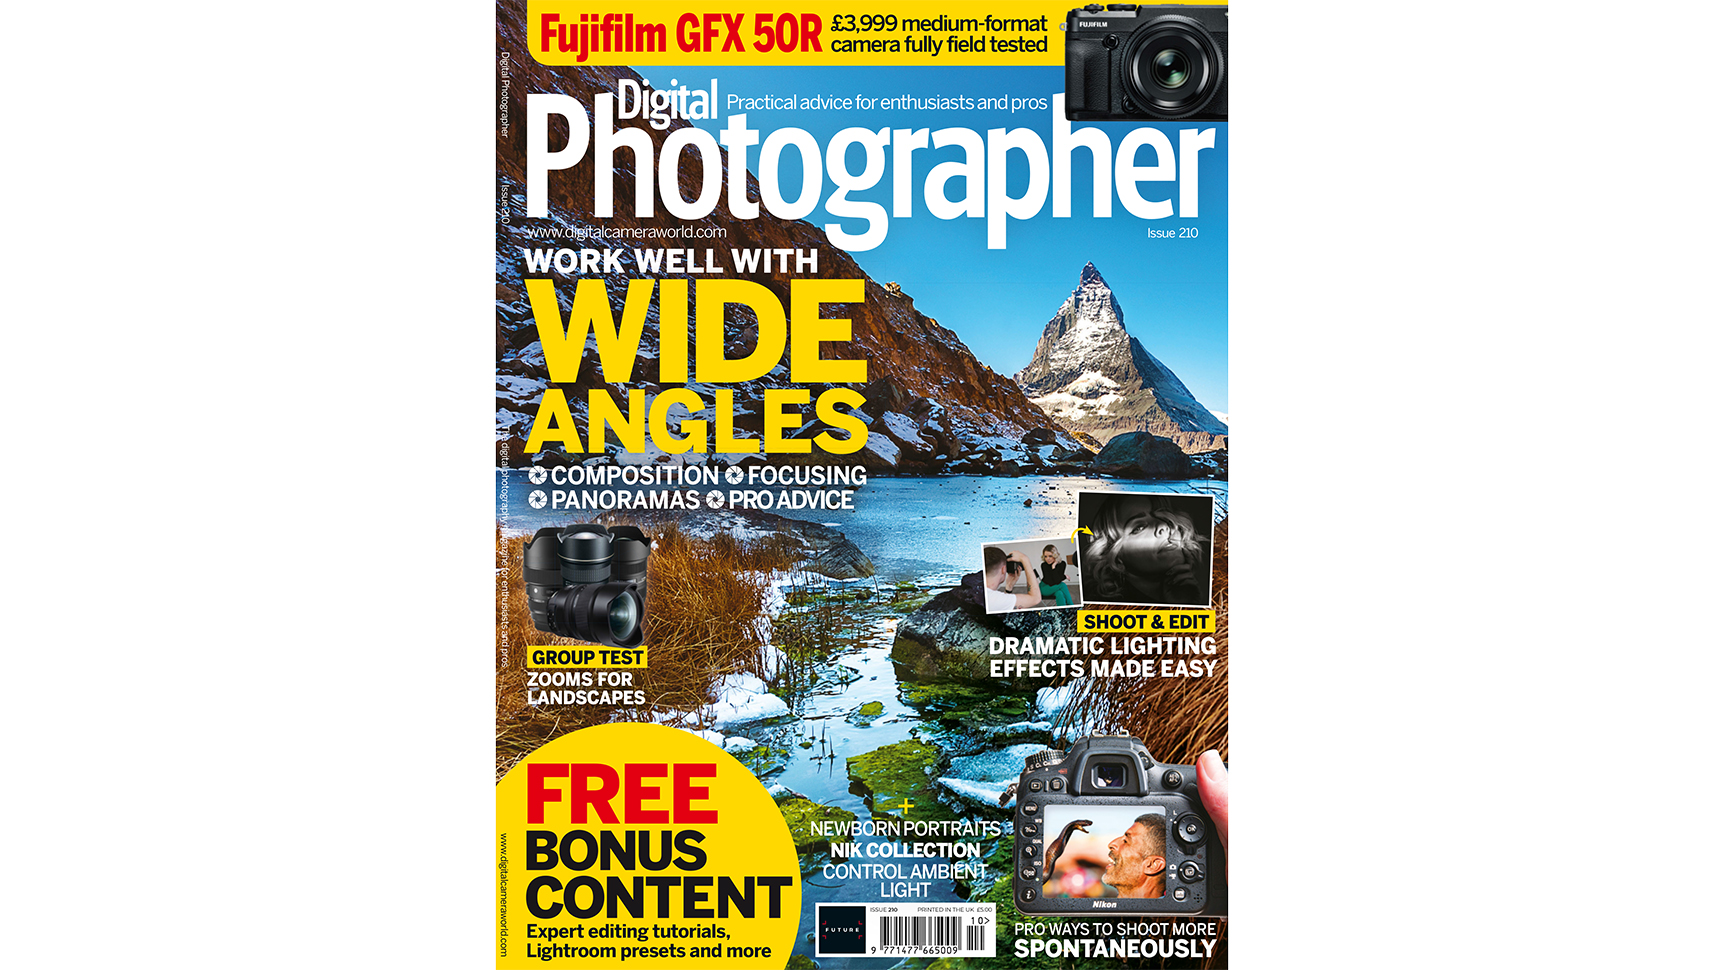 New Issue: Digital Photographer magazine Issue 210 is now on sale